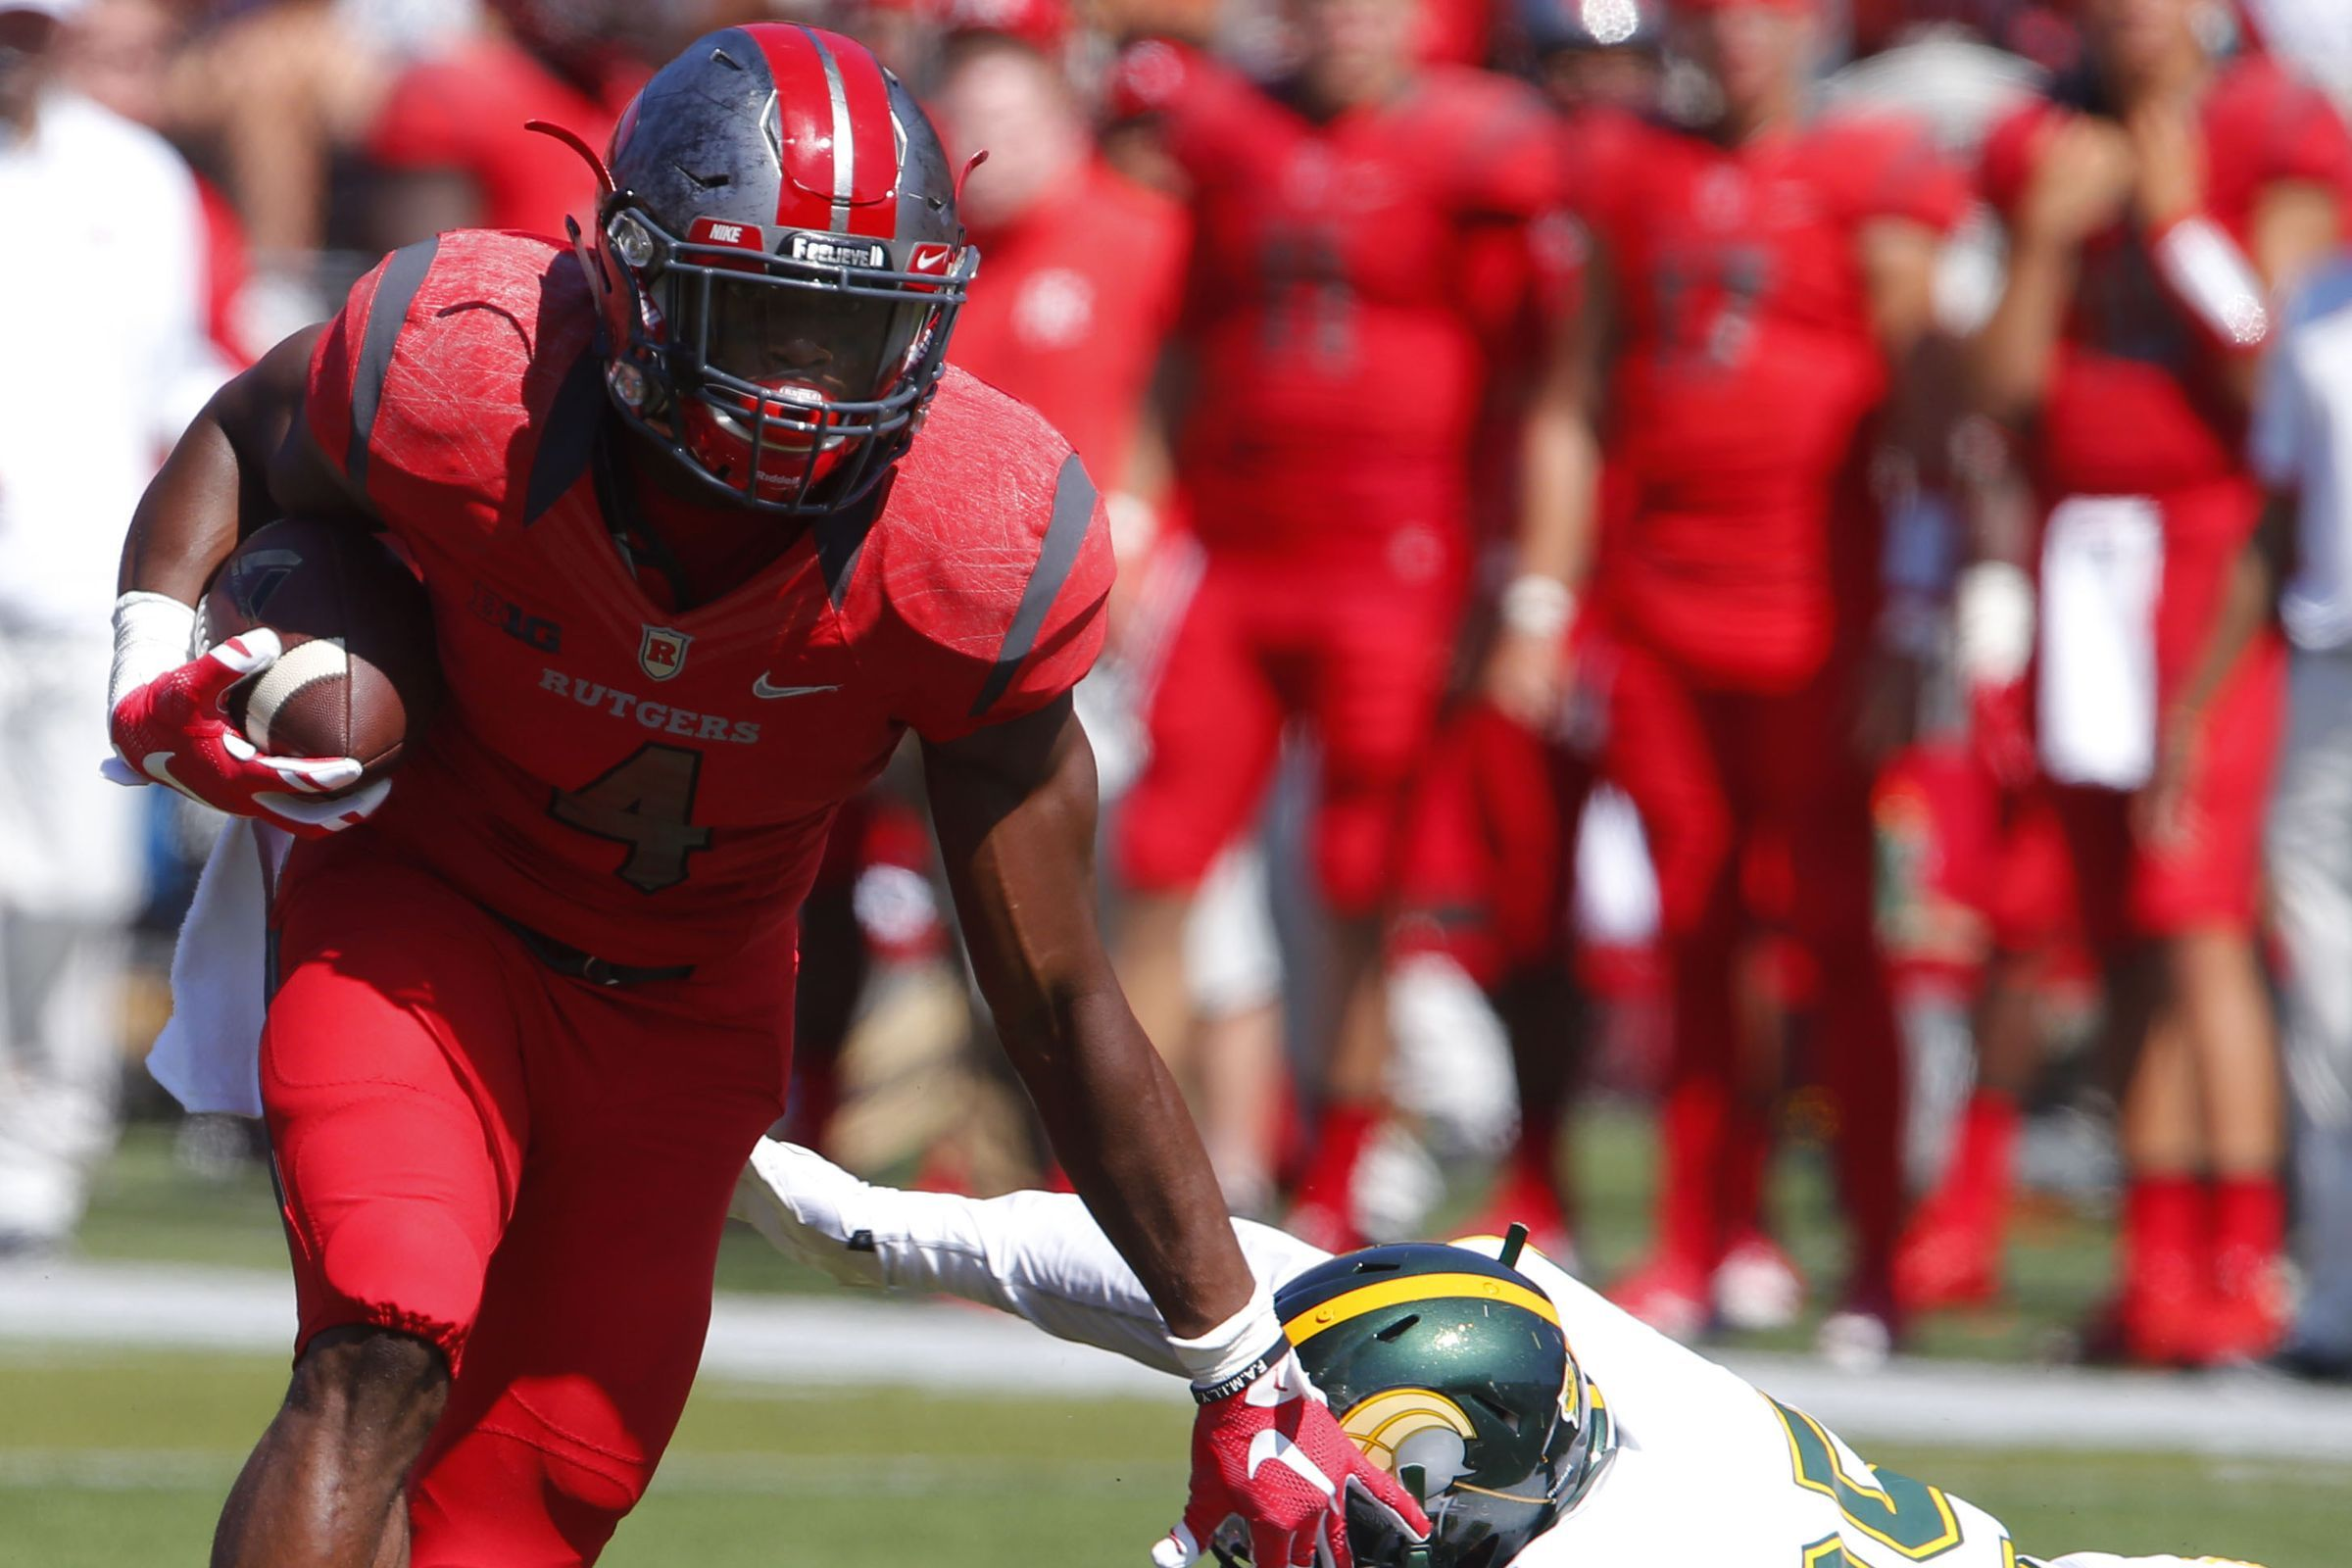 Rutgers Knights Google Search With Images Illinois Fighting Illini Fighting Illini College Football Uniforms